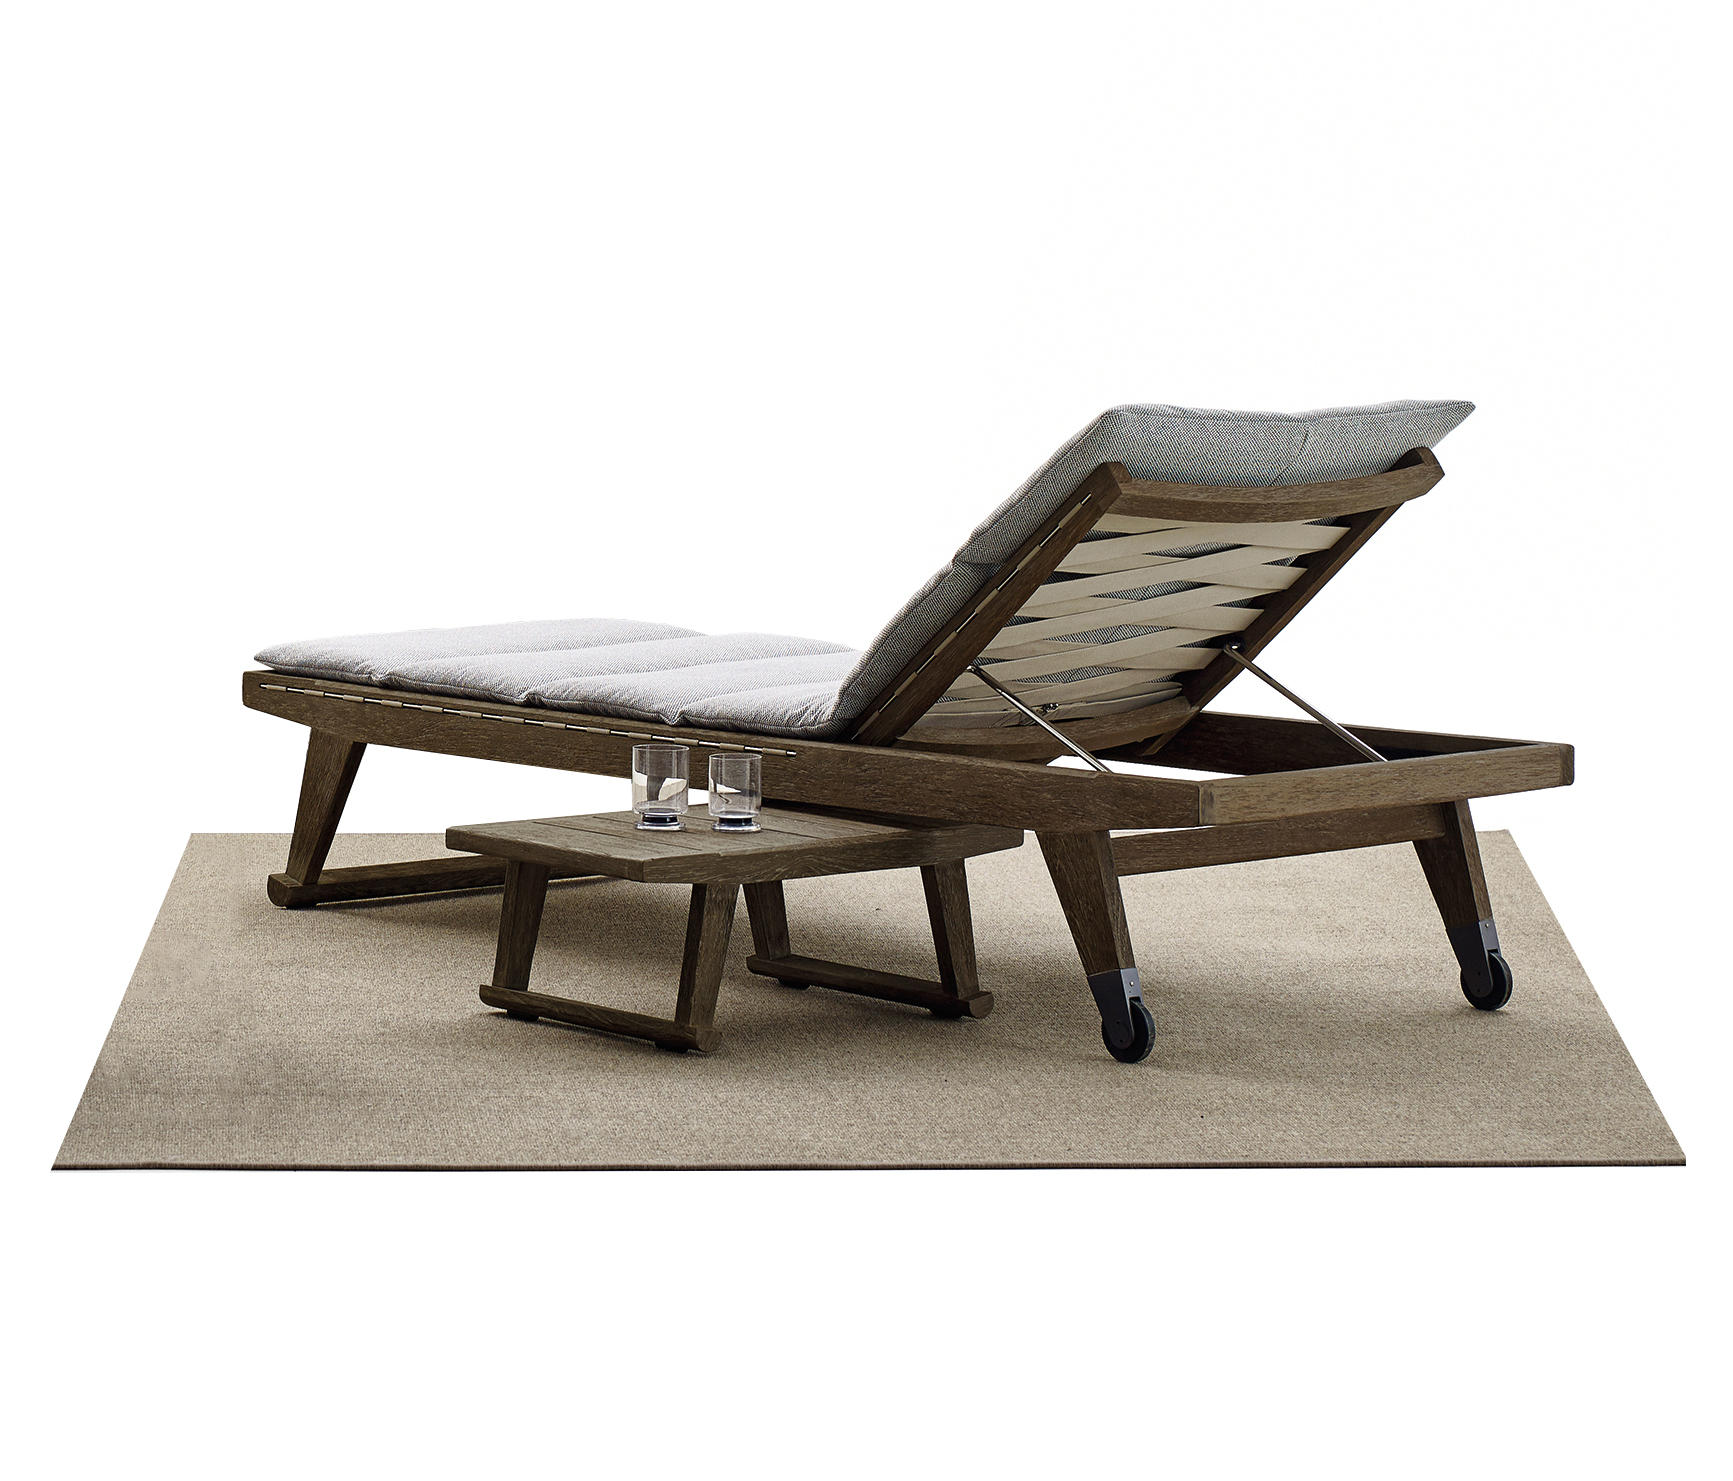 Gio chaise longue sun loungers from b b italia architonic for Chaise longue manufacturers